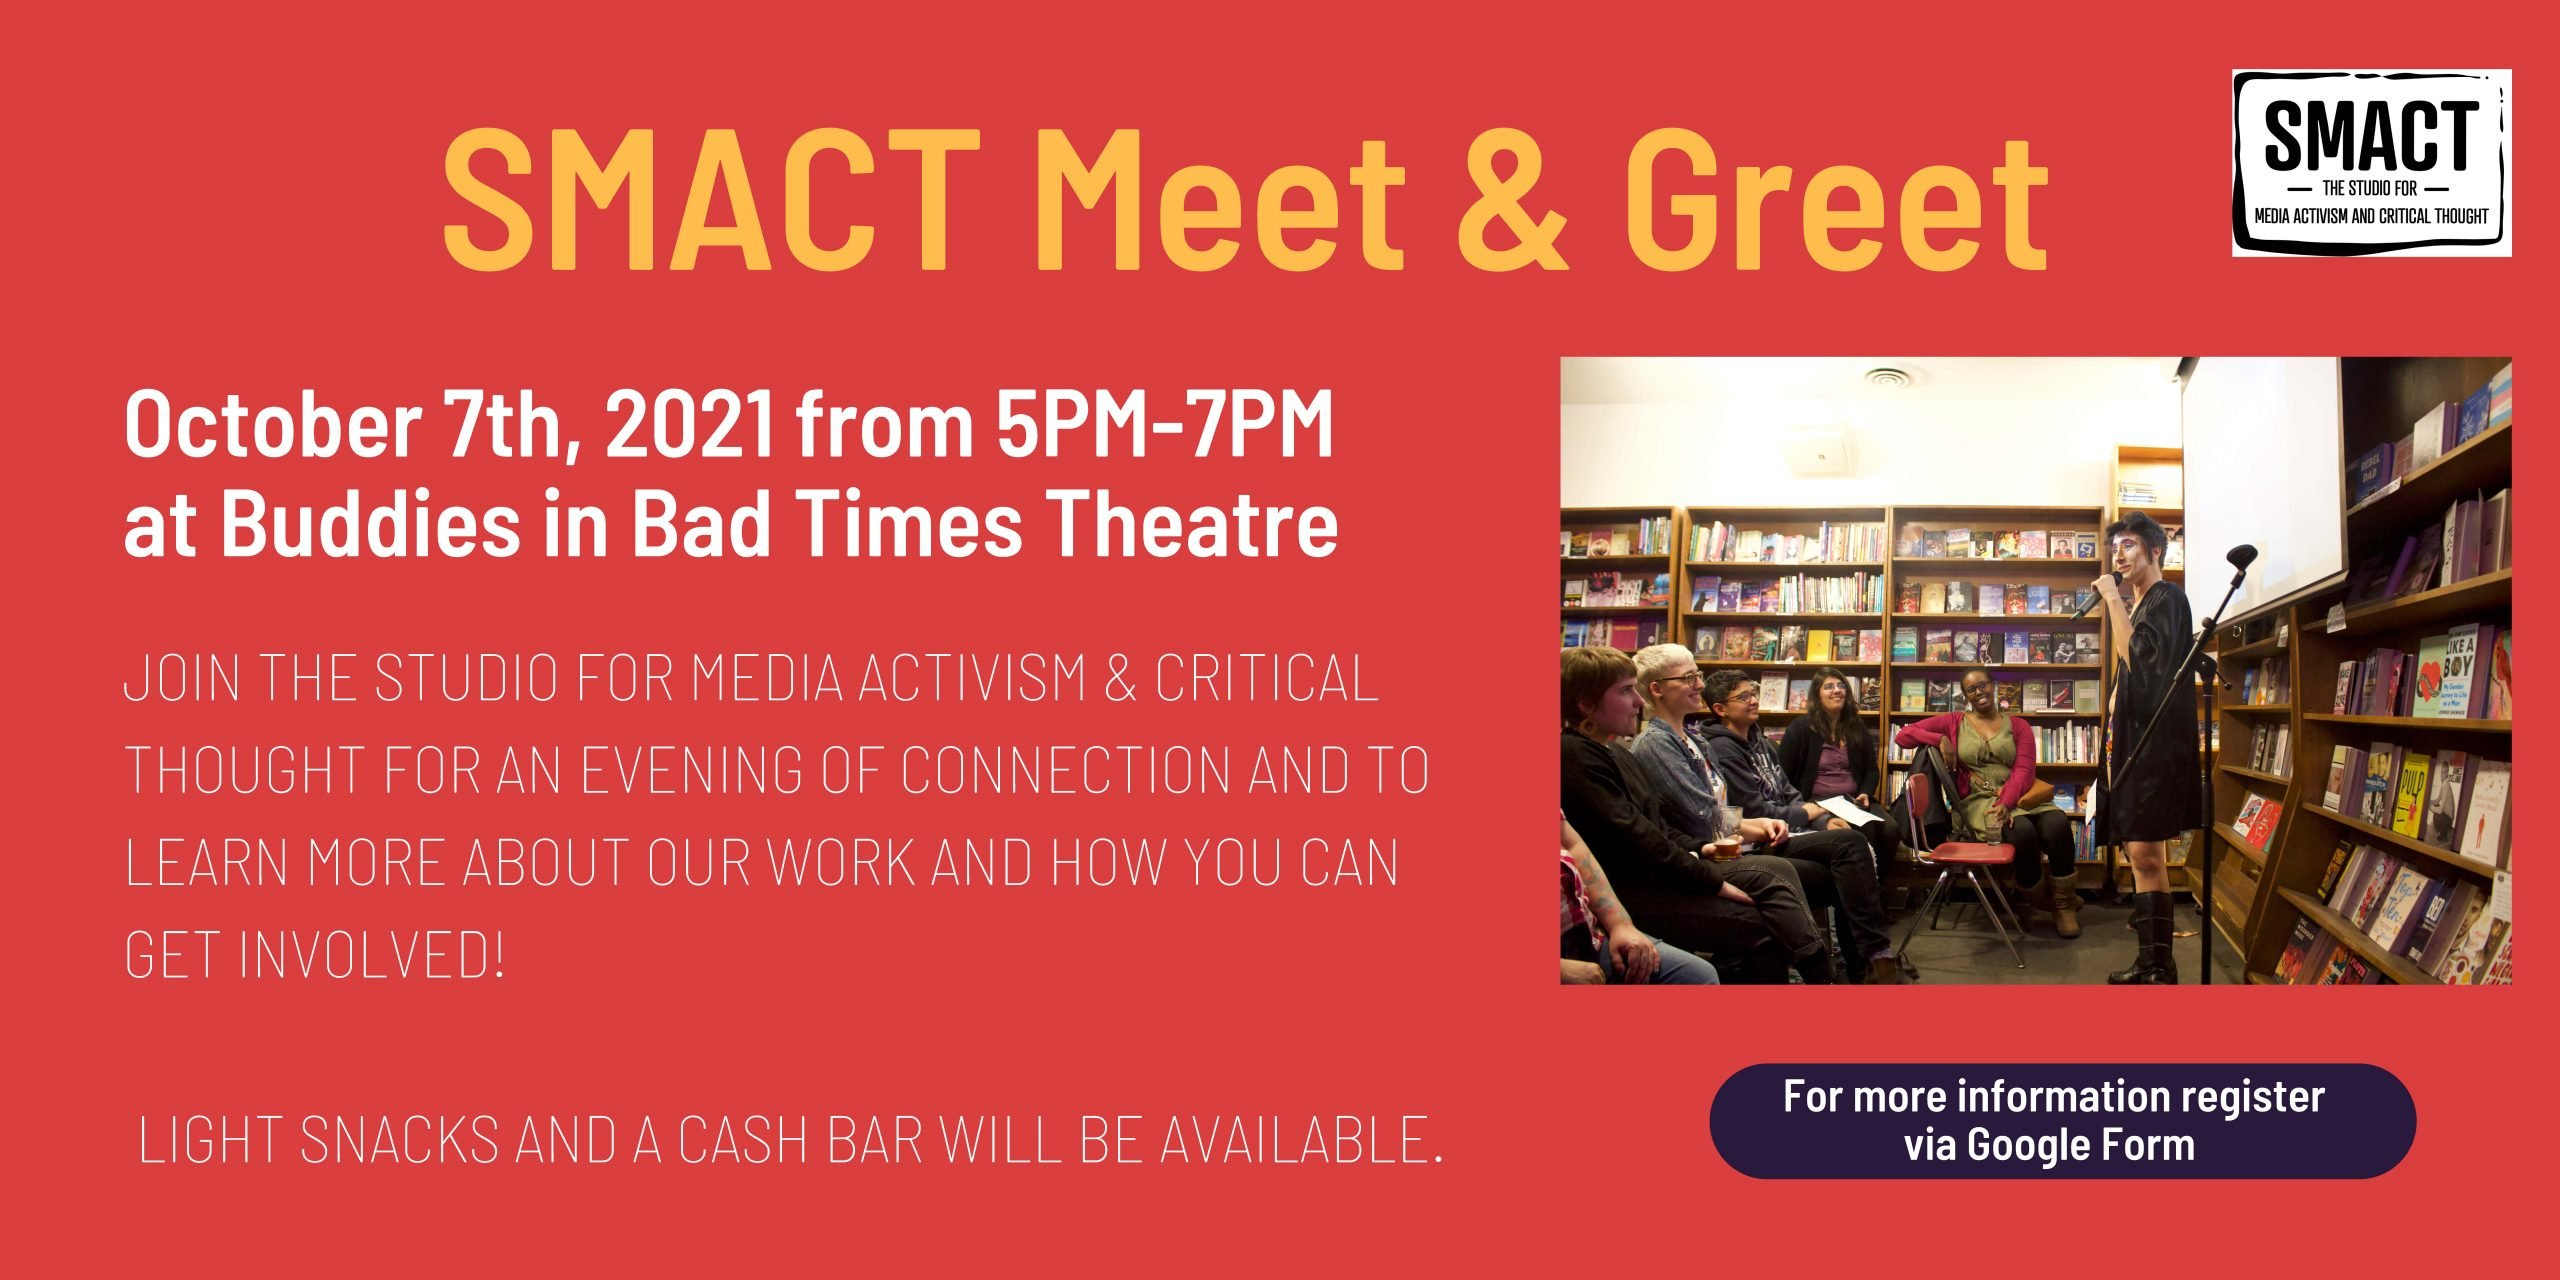 SMACT Meet & Greet banner - Oct 7, 5-7pm Buddies in Bad Time Theatre